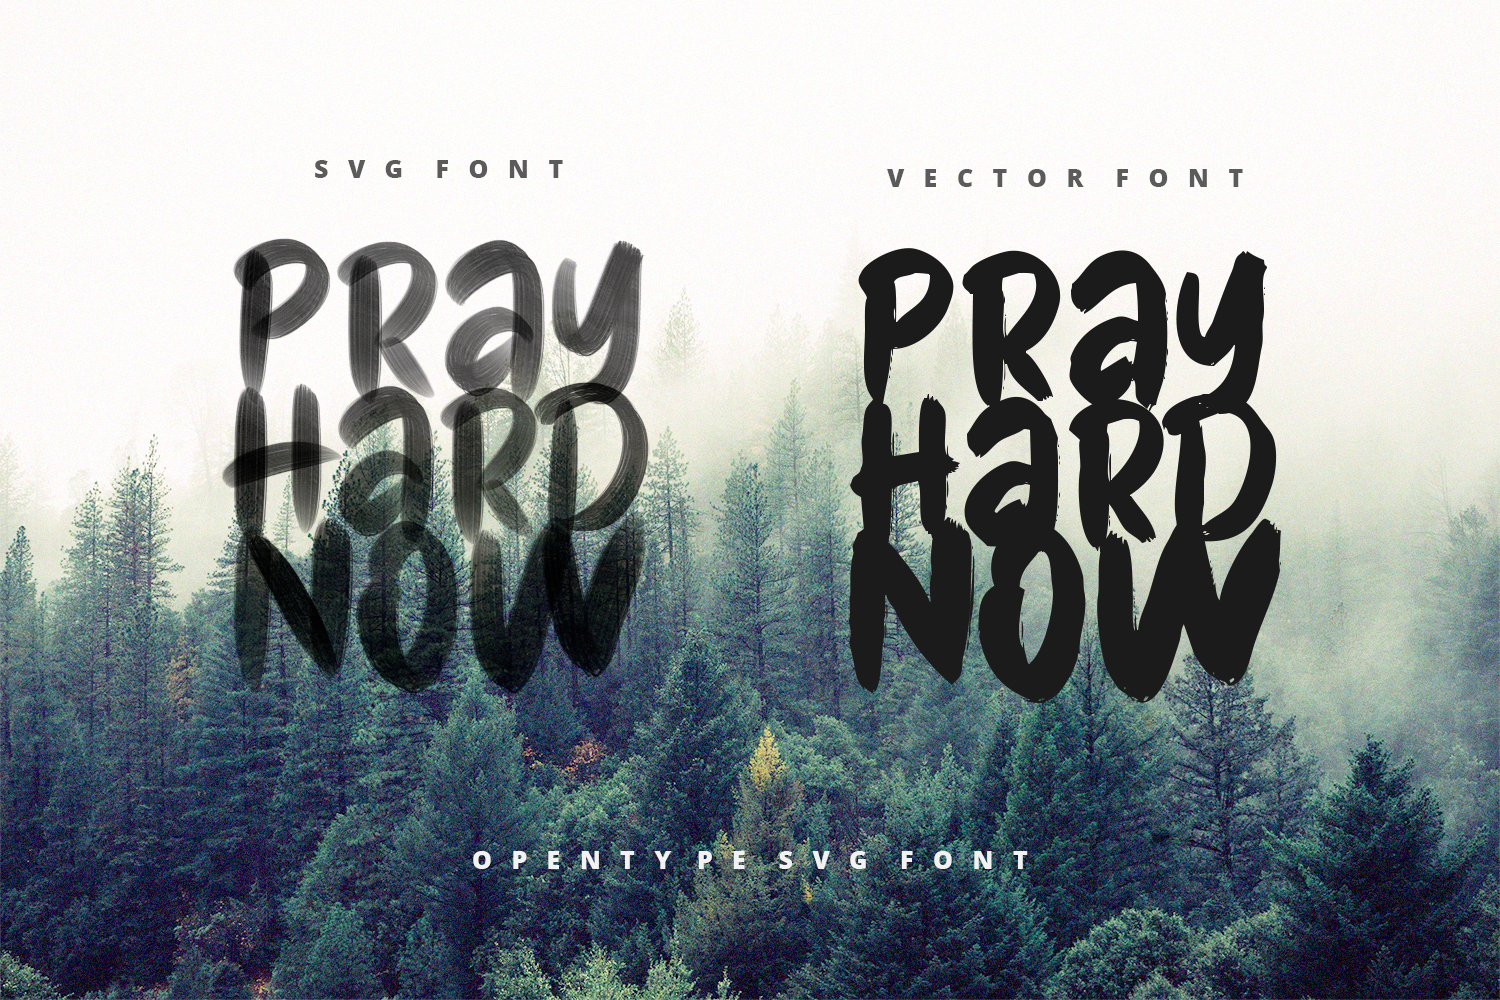 Pray Hard Now - 30 OFF - SVG Font example image 3